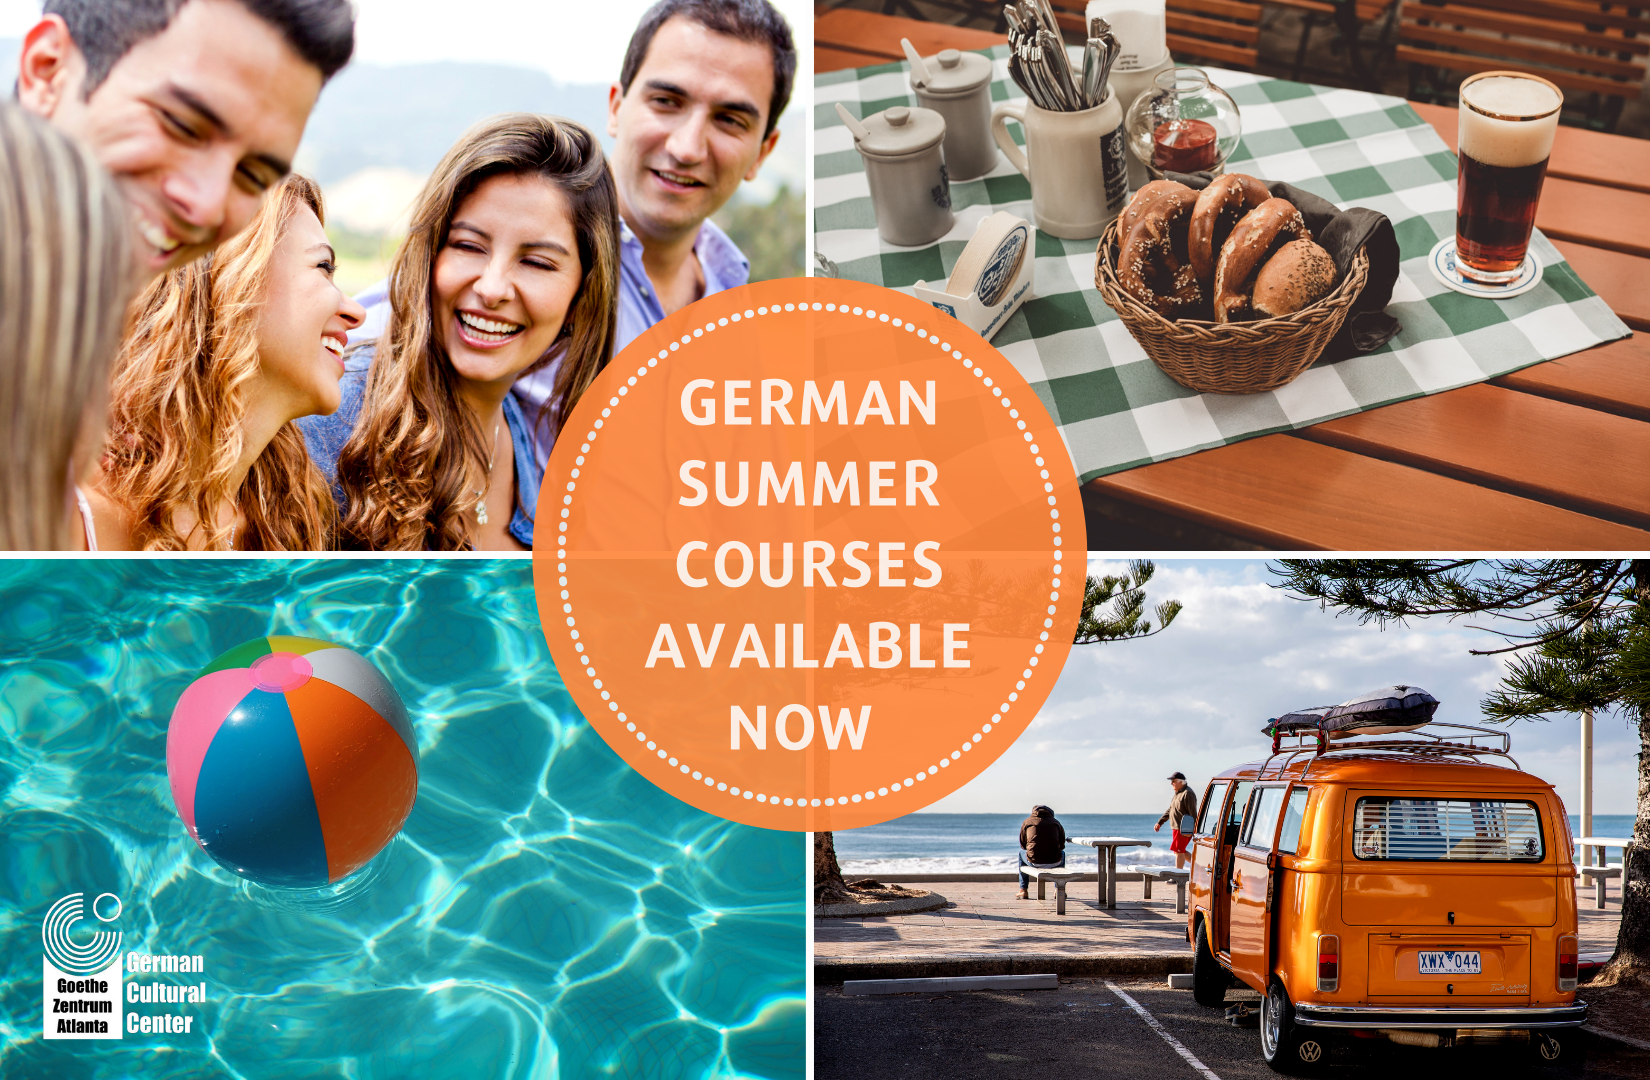 German Summer Courses